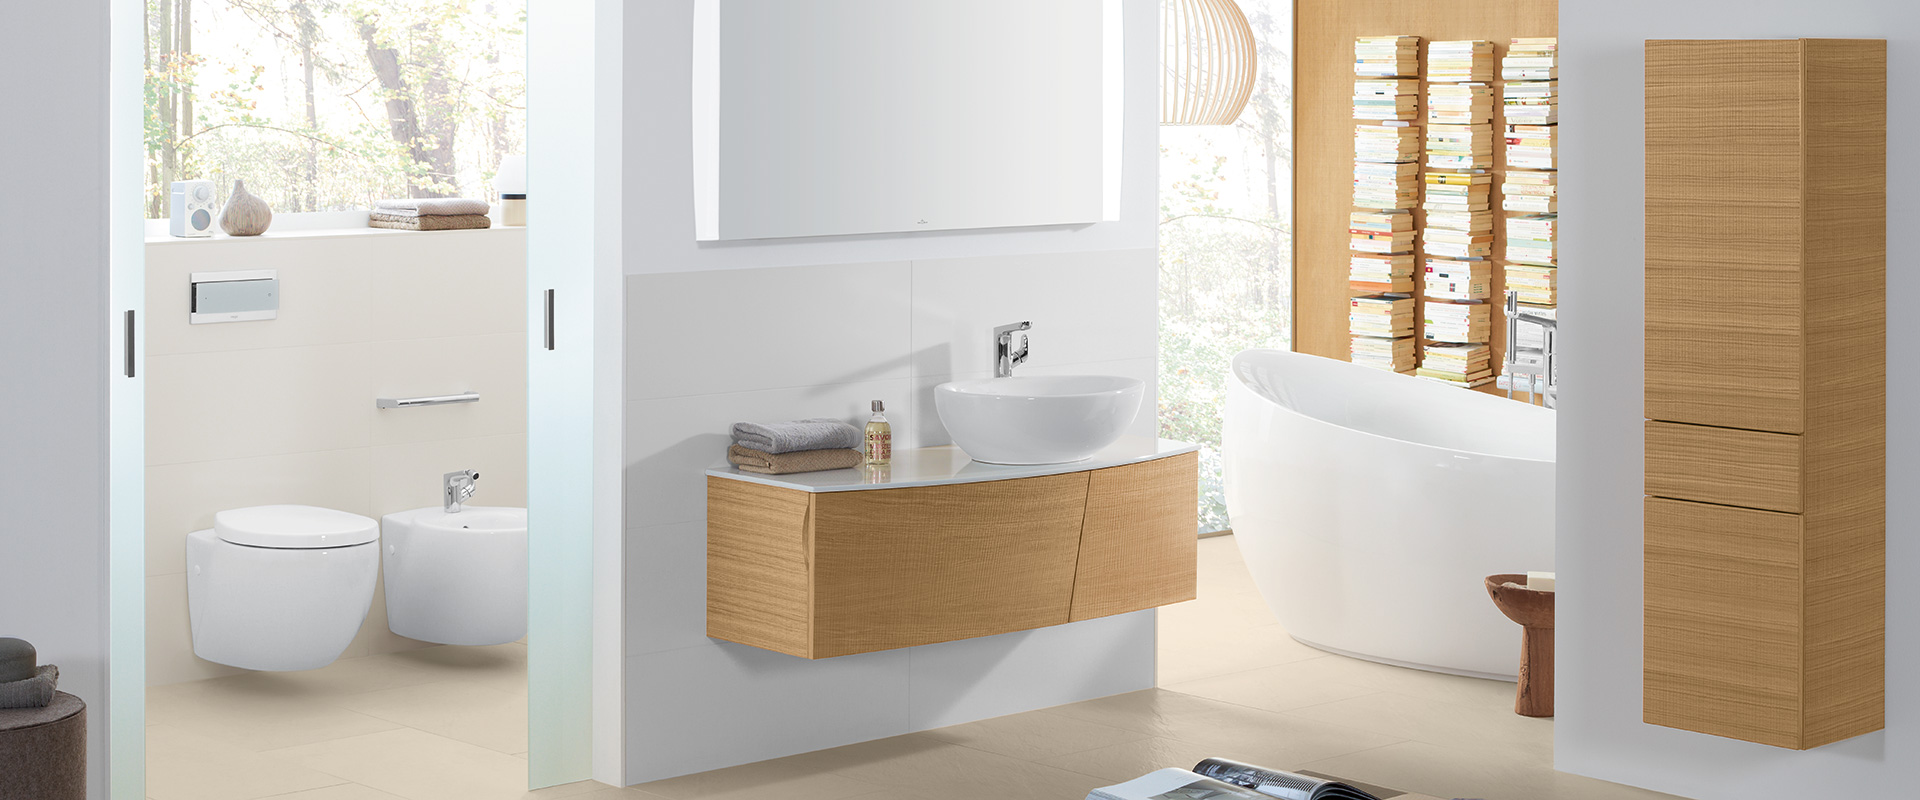 Aveo new generation collection by Villeroy & Boch - Natural ... Nature Bathroom Designs Html on nature doors, nature tile designs, nature inspired design, nature fabrics, nature bedroom, nature fence designs, nature jewelry designs, nature wood burning designs, nature baths, nature kitchen, nature paint designs, nature art, nature decor, nature showers, nature wall designs, nature architecture, nature office design, nature house designs, natural stone shower designs, nature room,